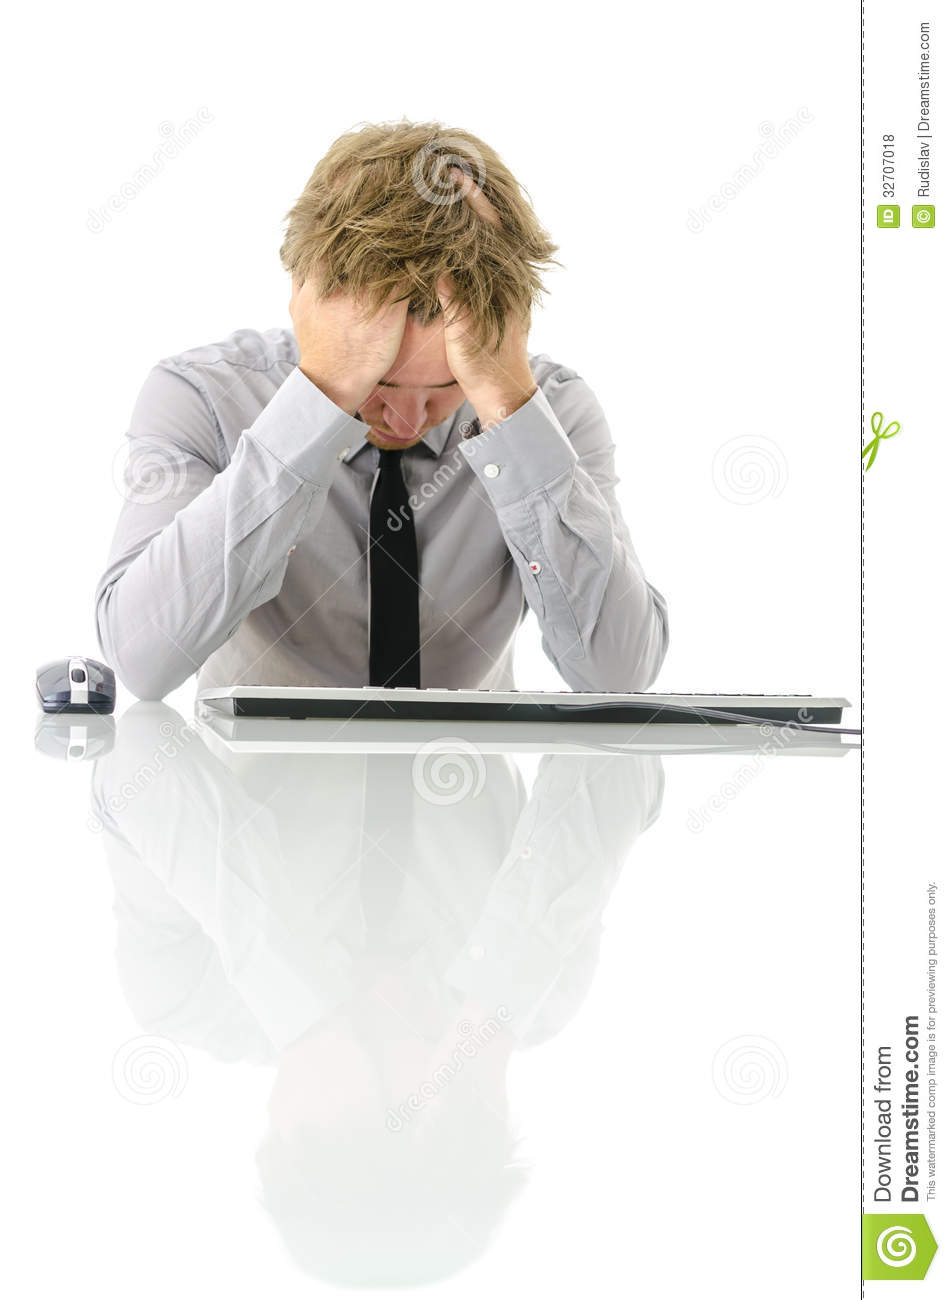 Tired Workaholic Sleeping At His Desk Royalty Free Stock